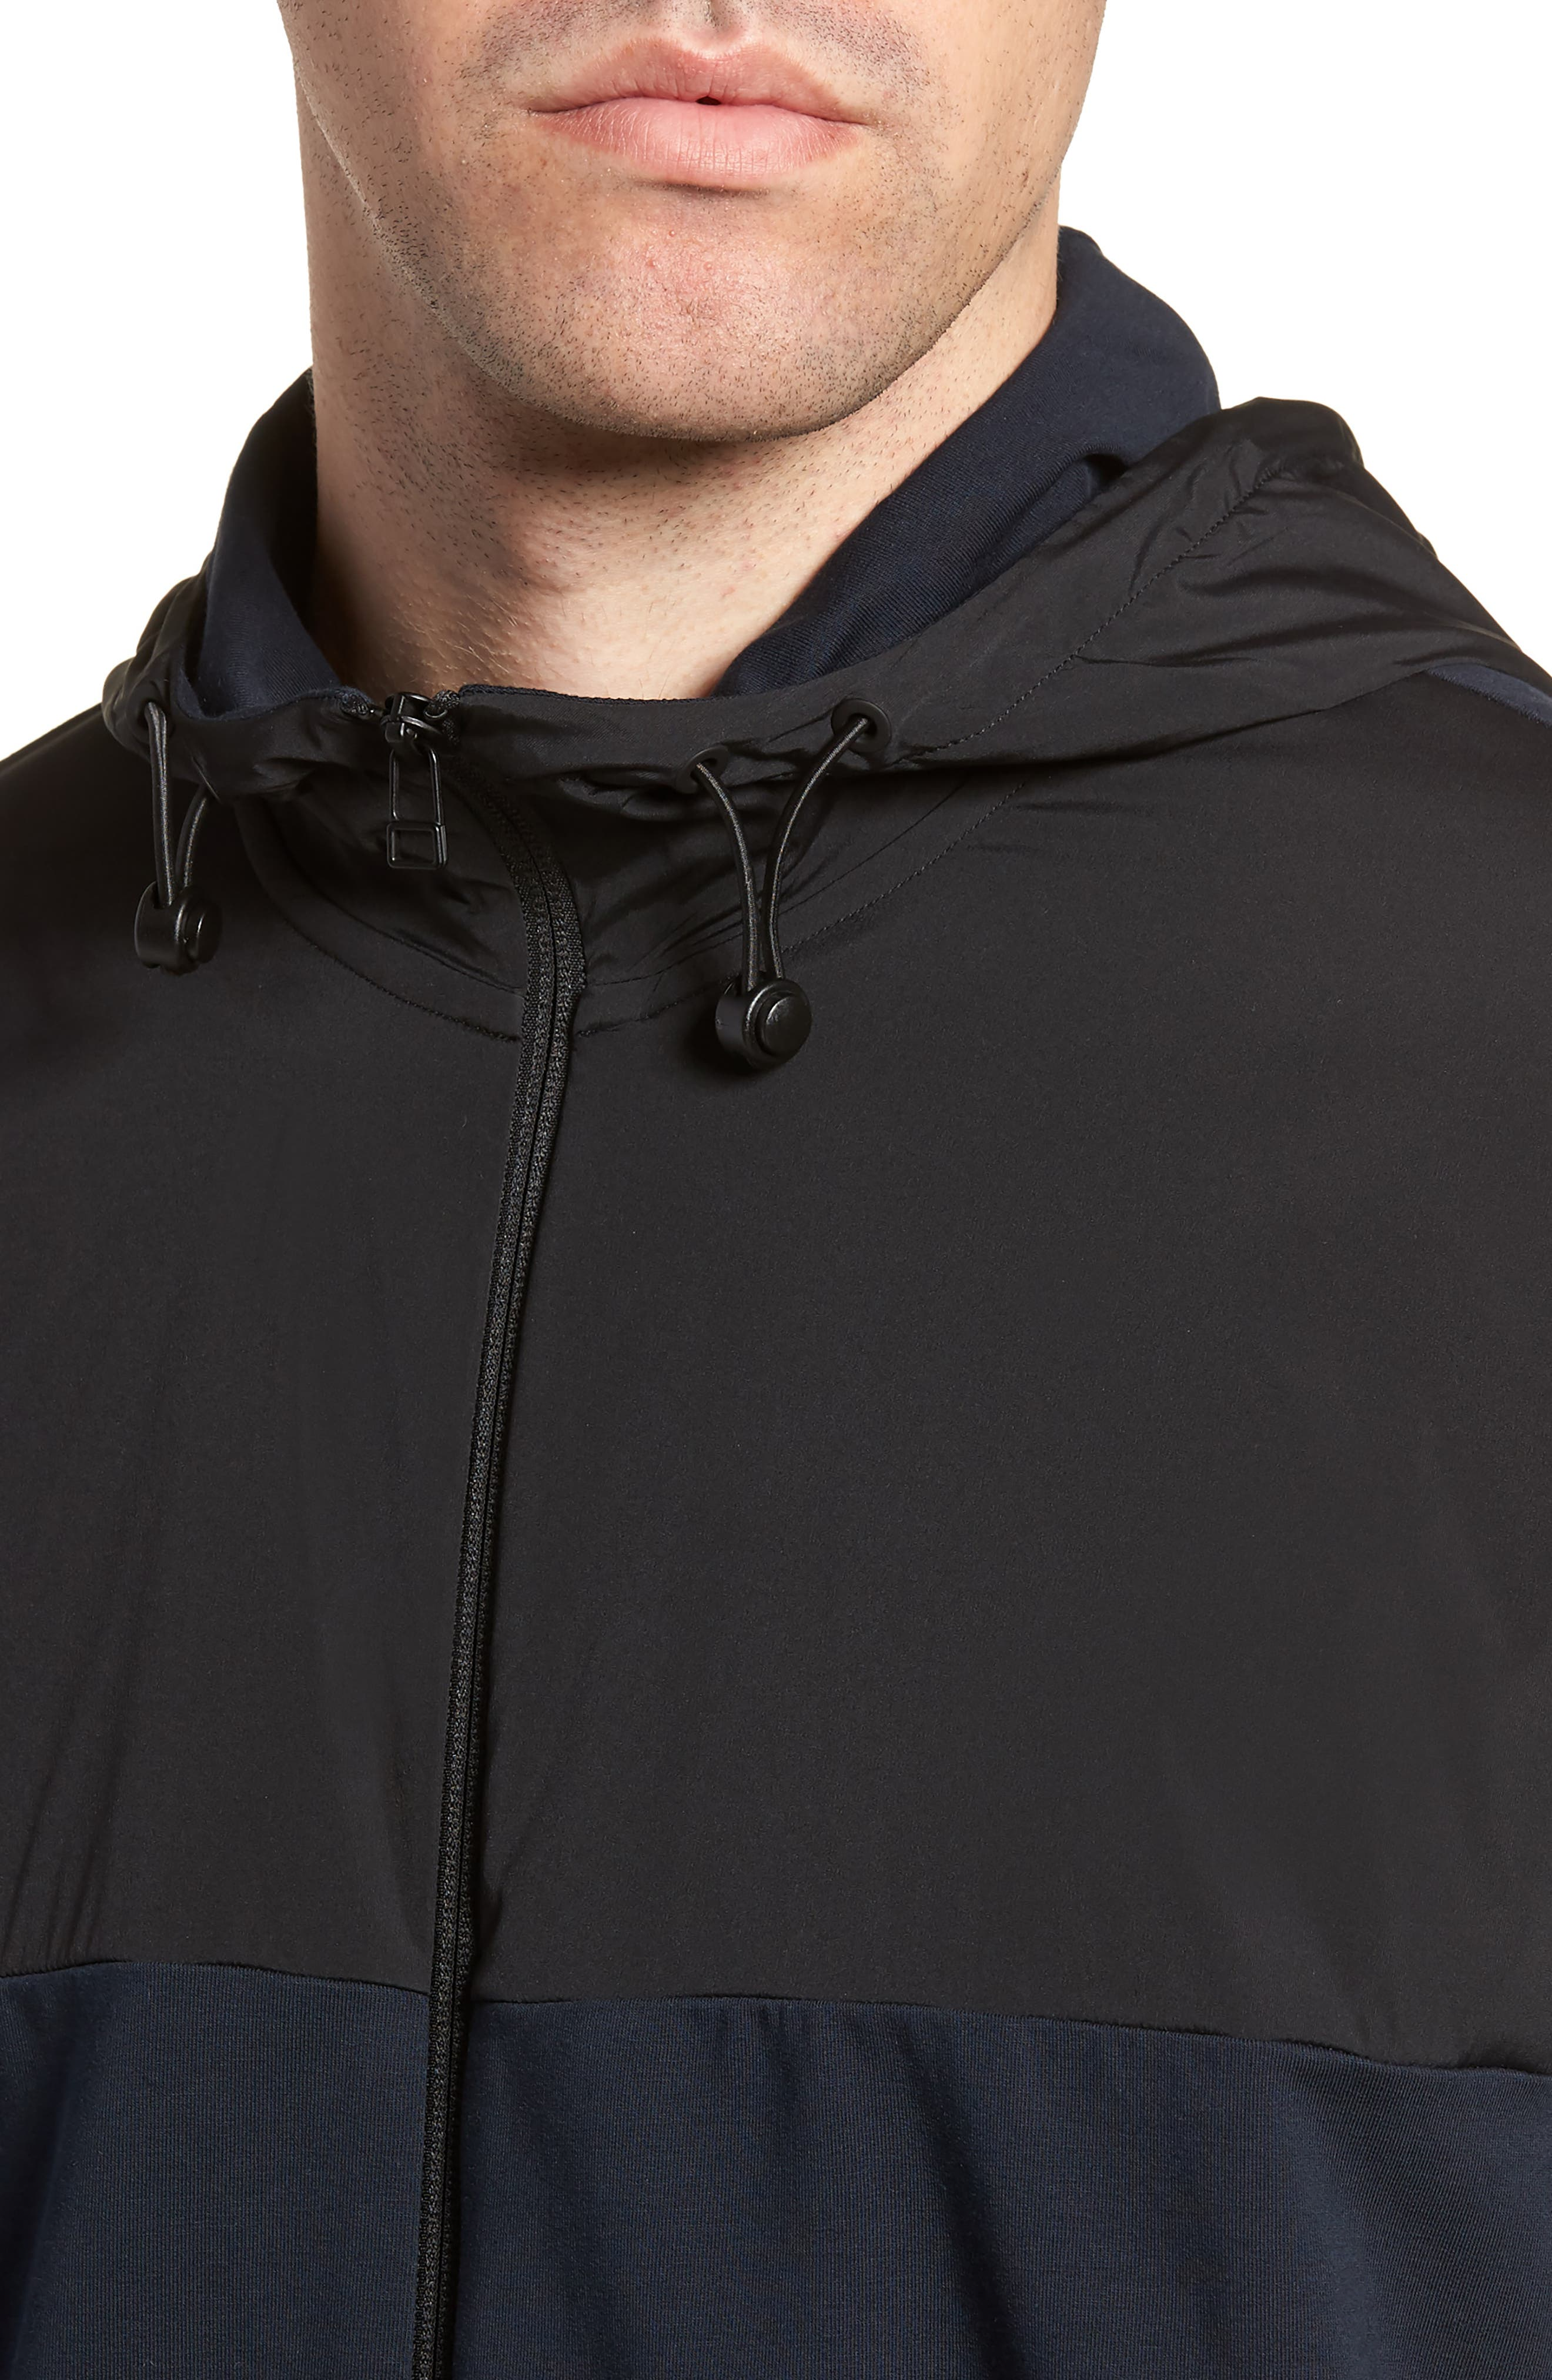 Combo Tech Regular Fit Full Zip Hoodie,                             Alternate thumbnail 3, color,                             Eclipse